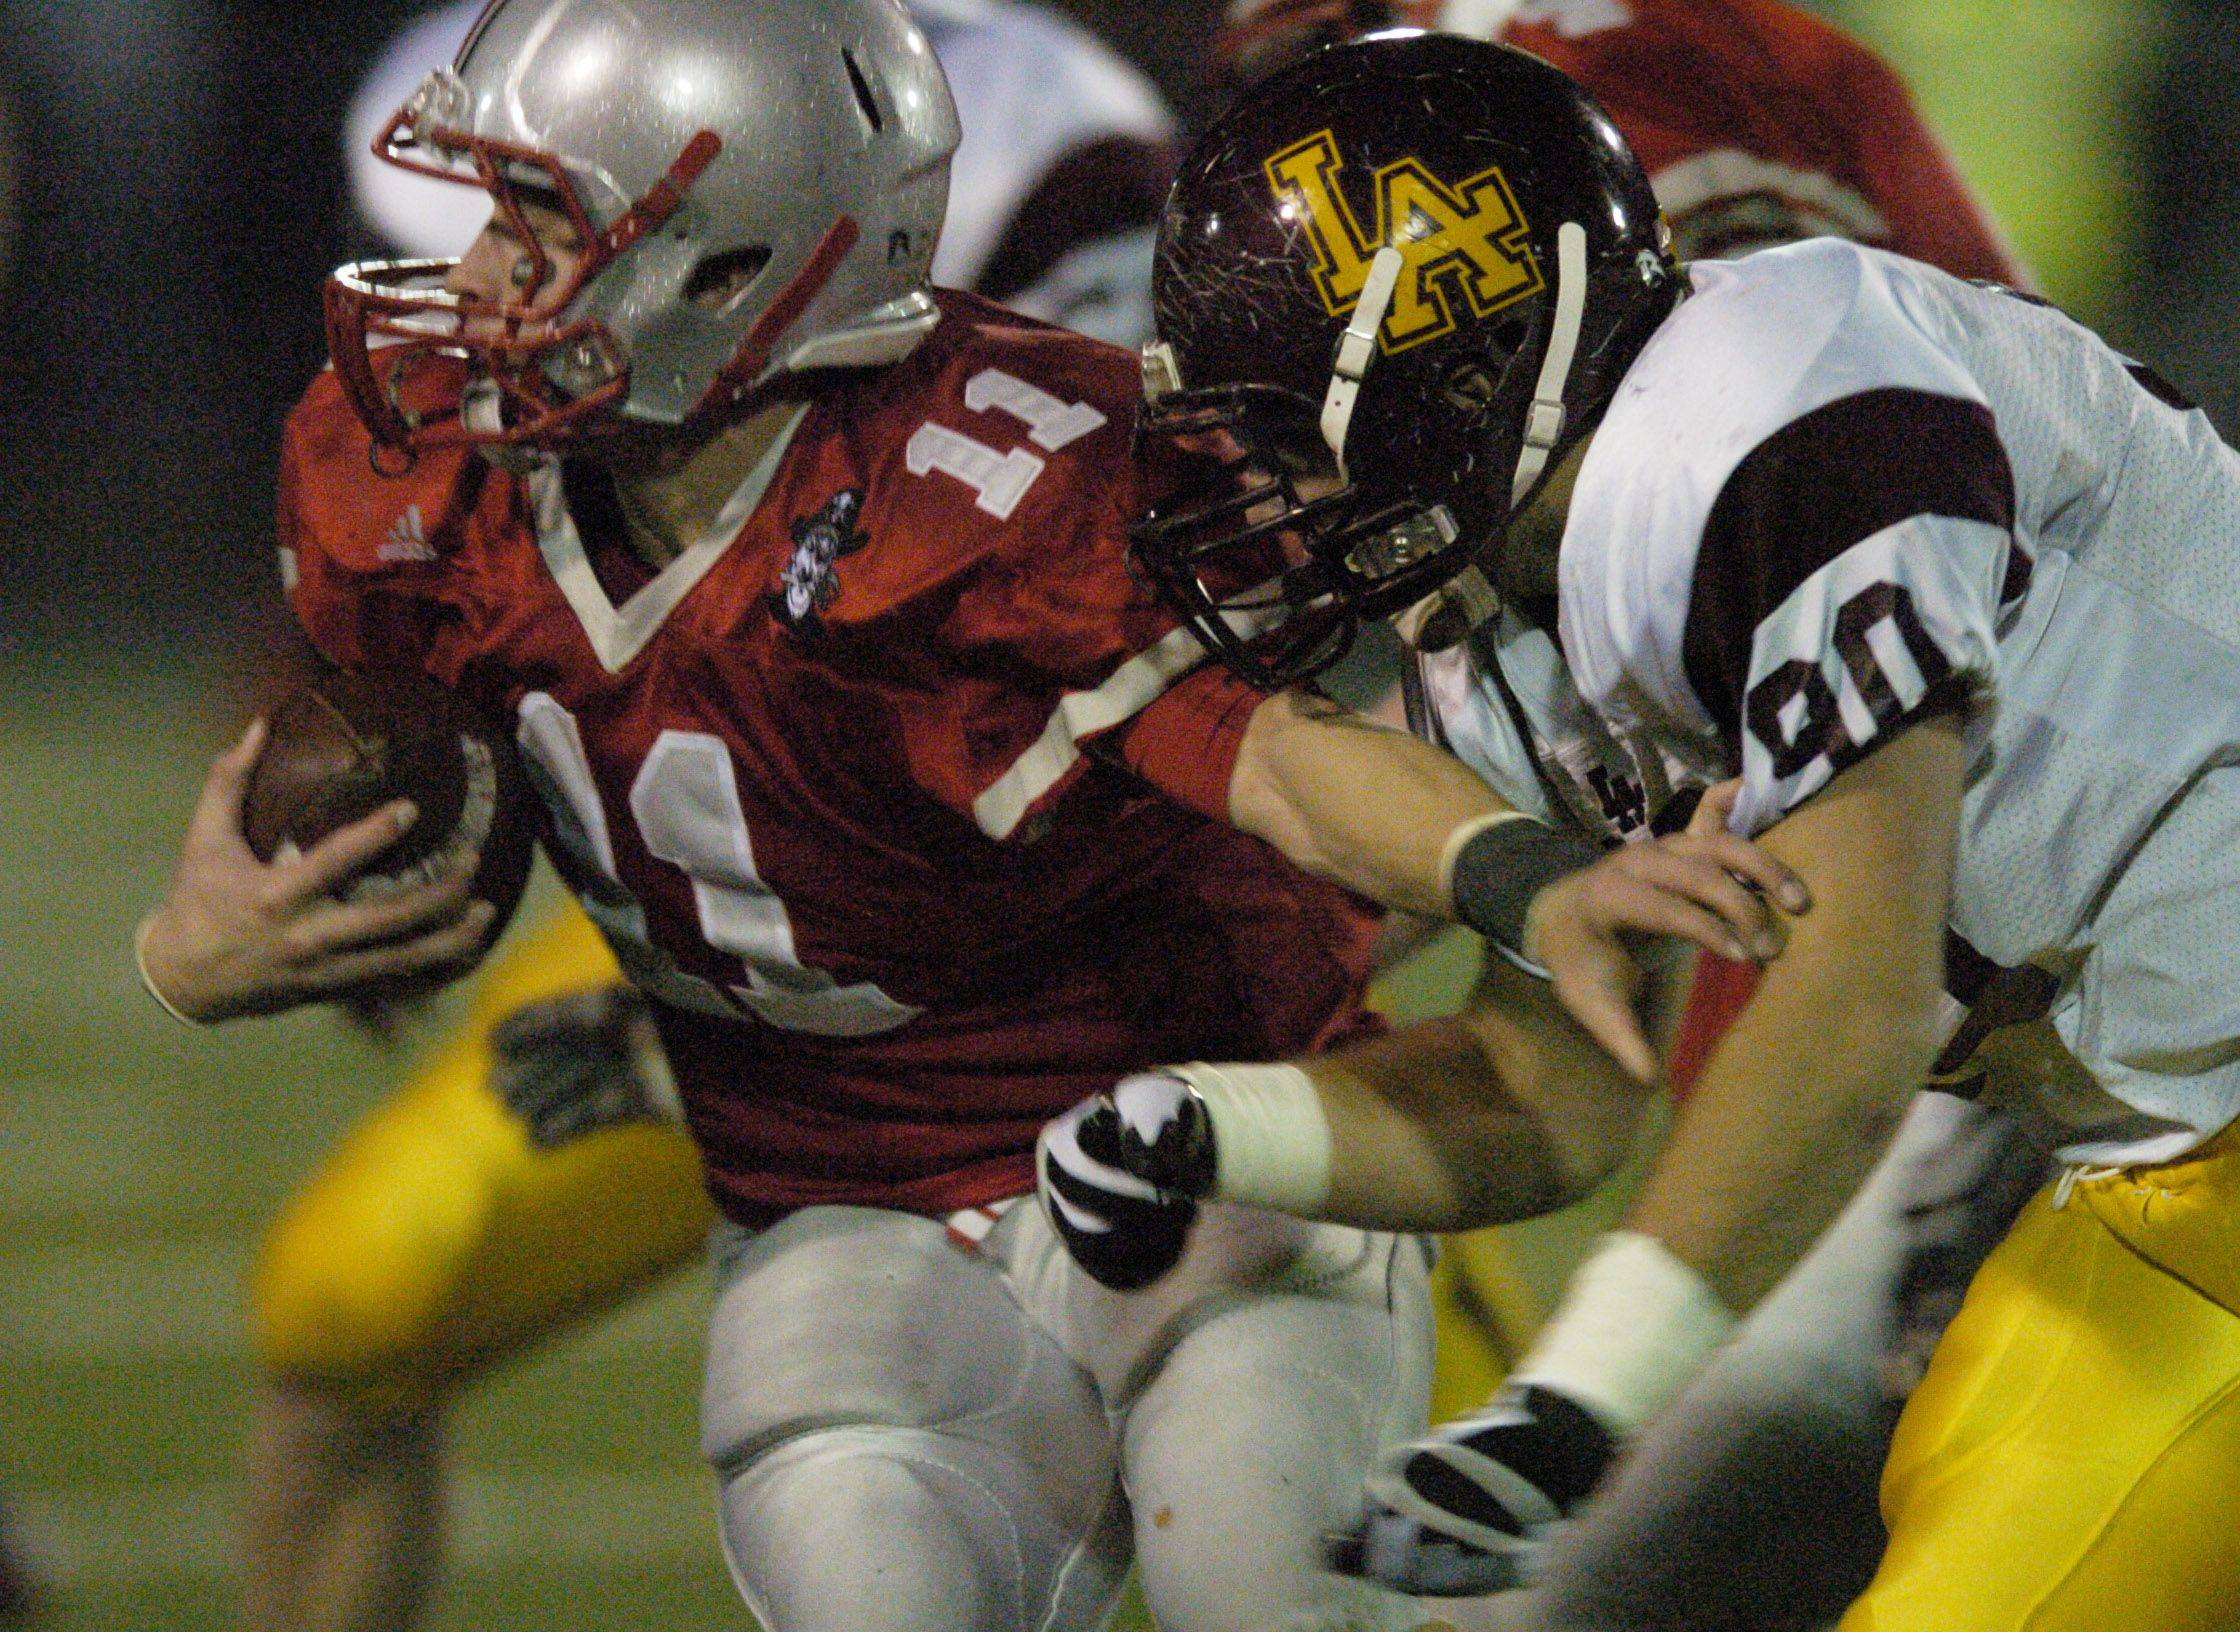 Palatine's Cody Bobbit tries to break free from Loyola Academy's Eric Hauser.